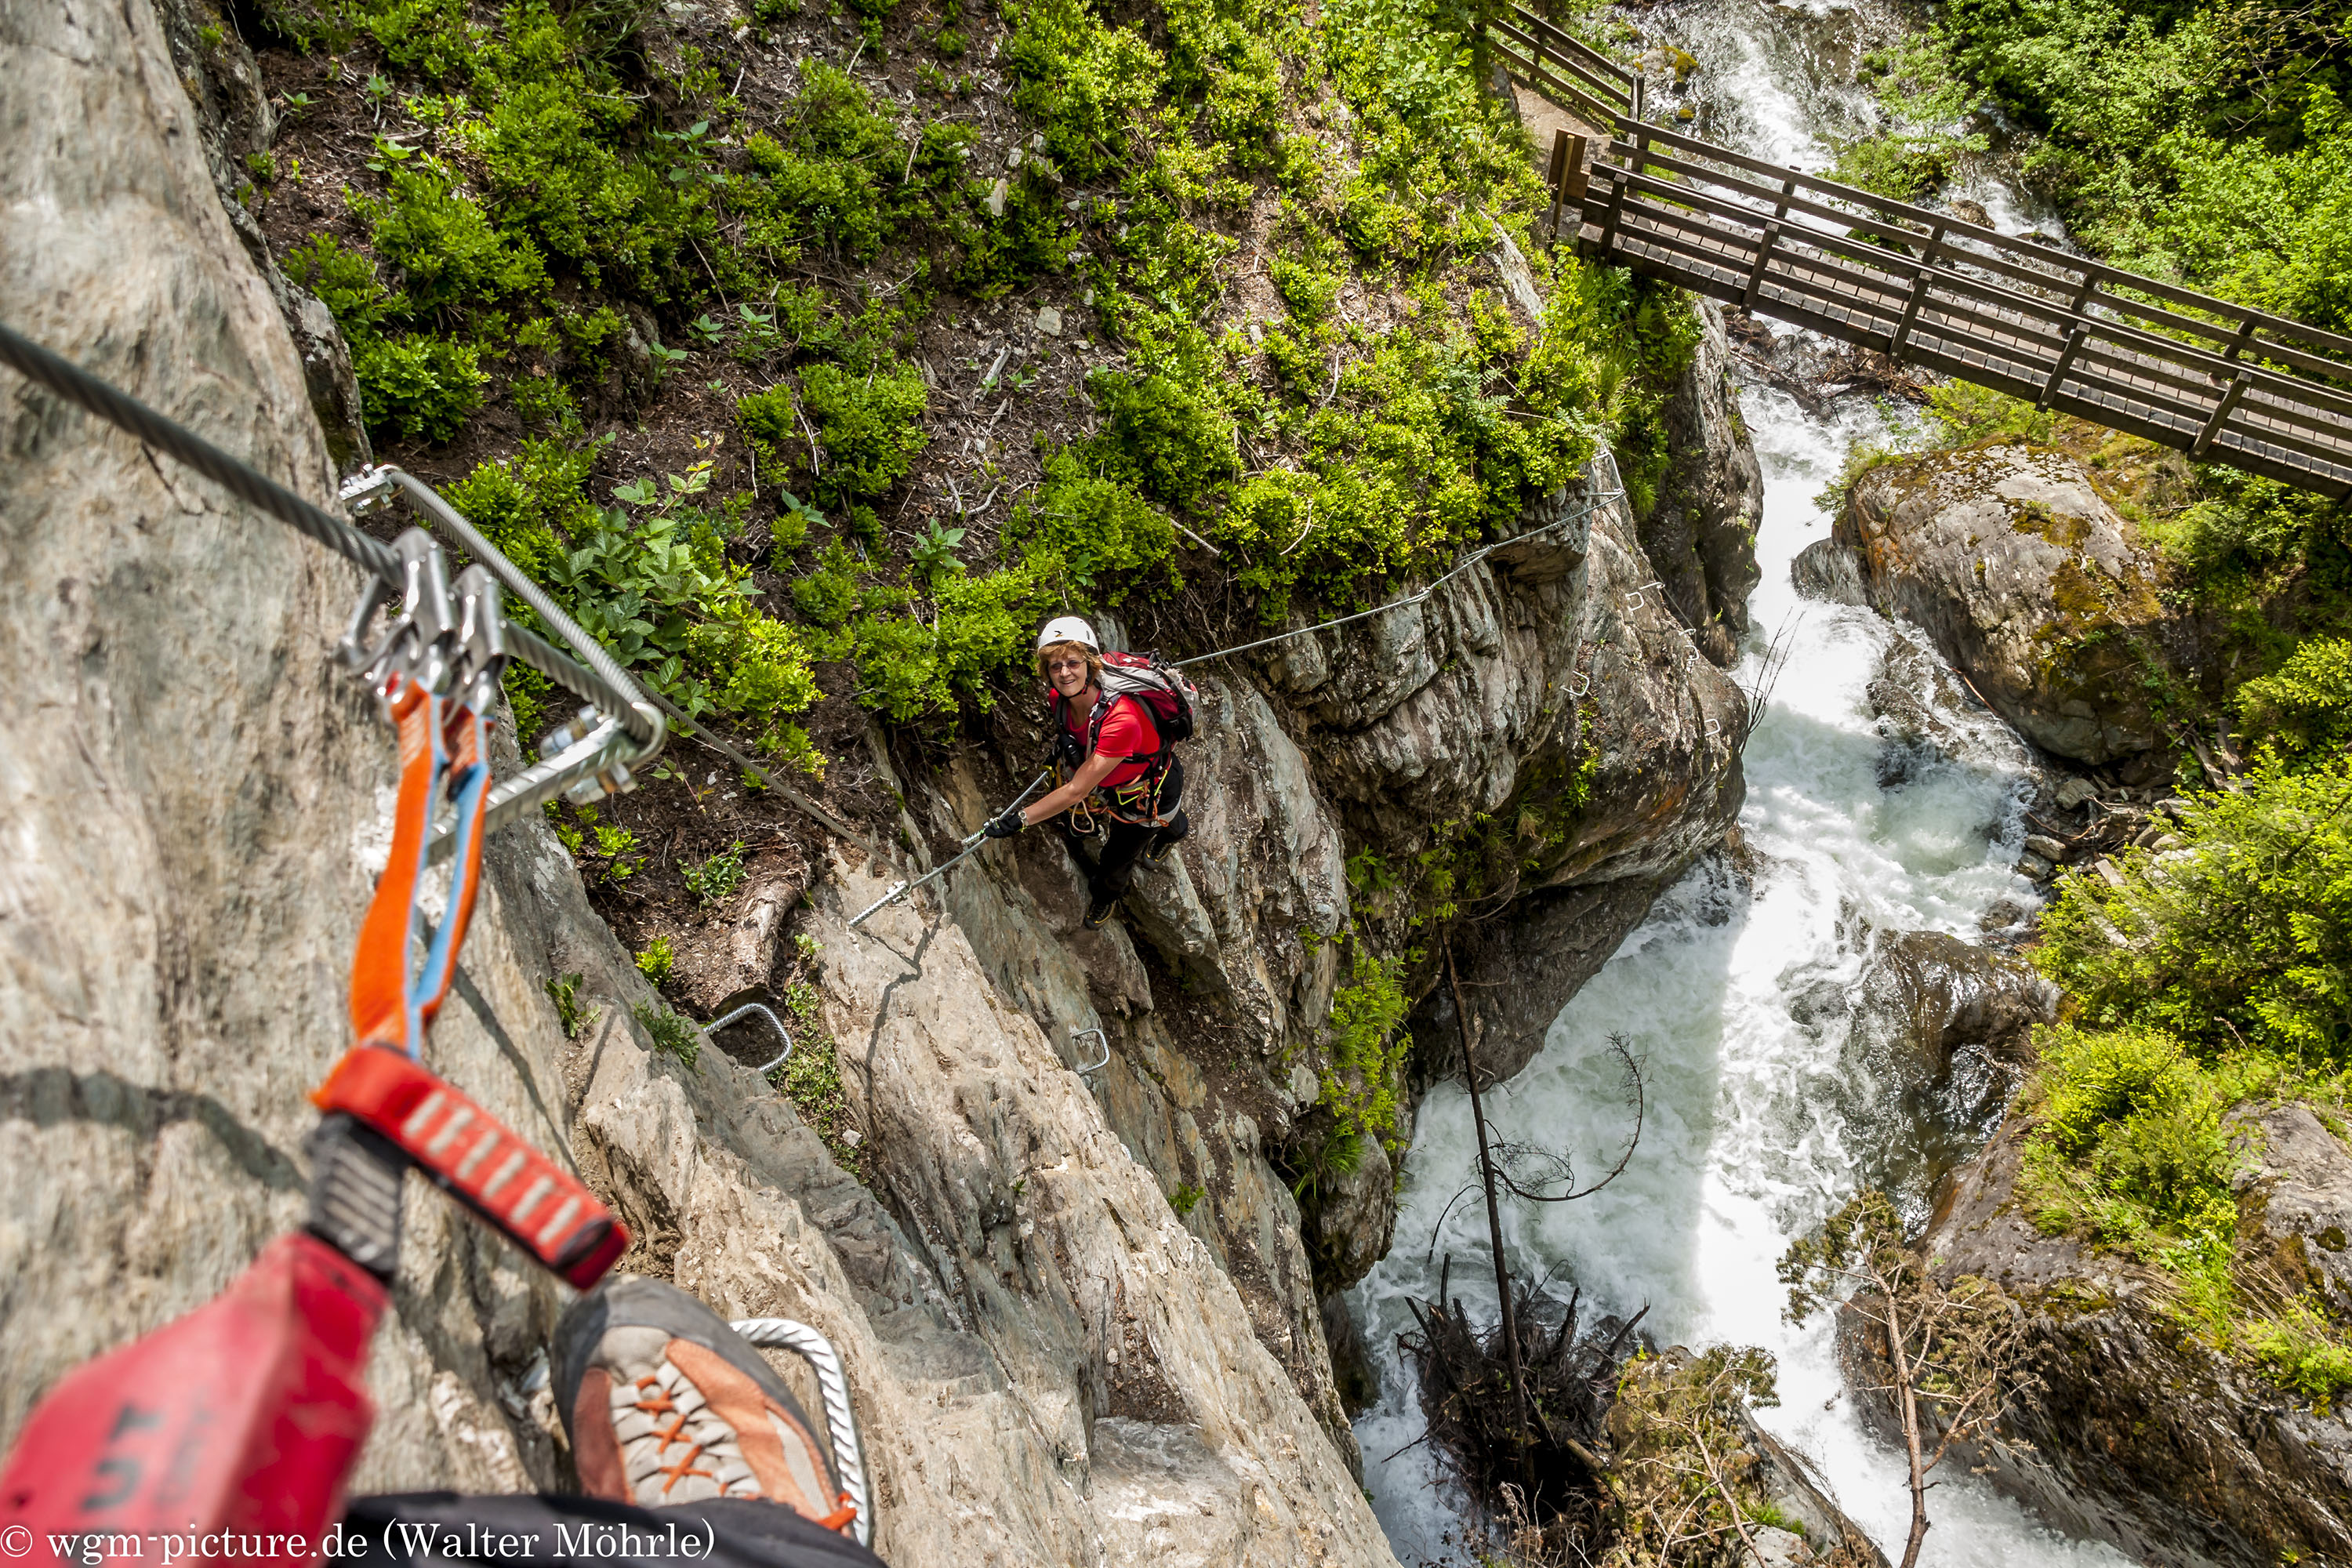 Klettersteigset Funktionsweise : Zillertal wgm picture